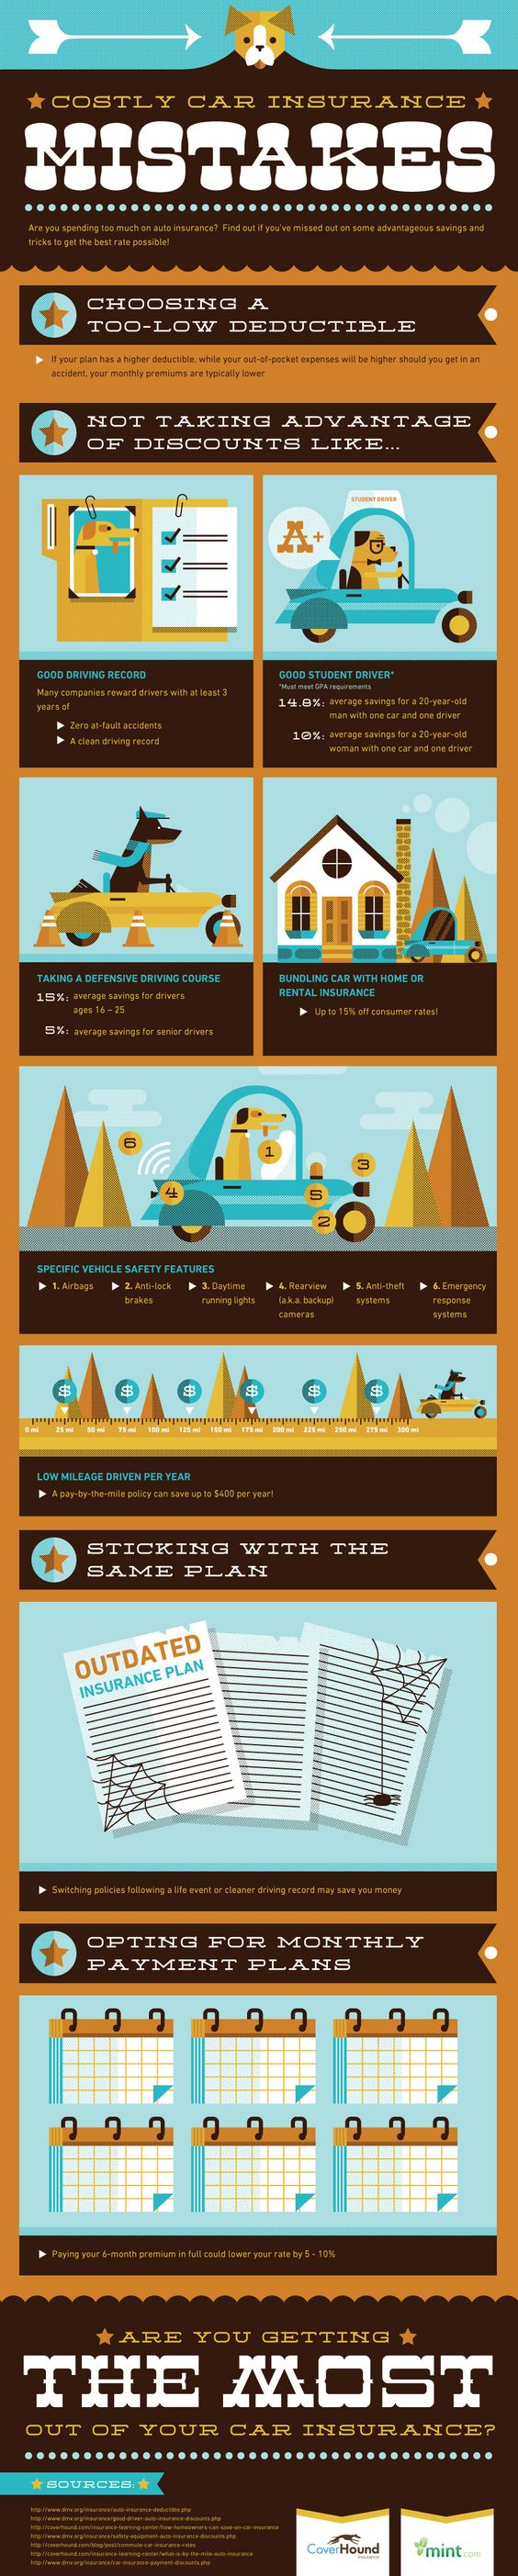 car-insurance-mistakes-infographic